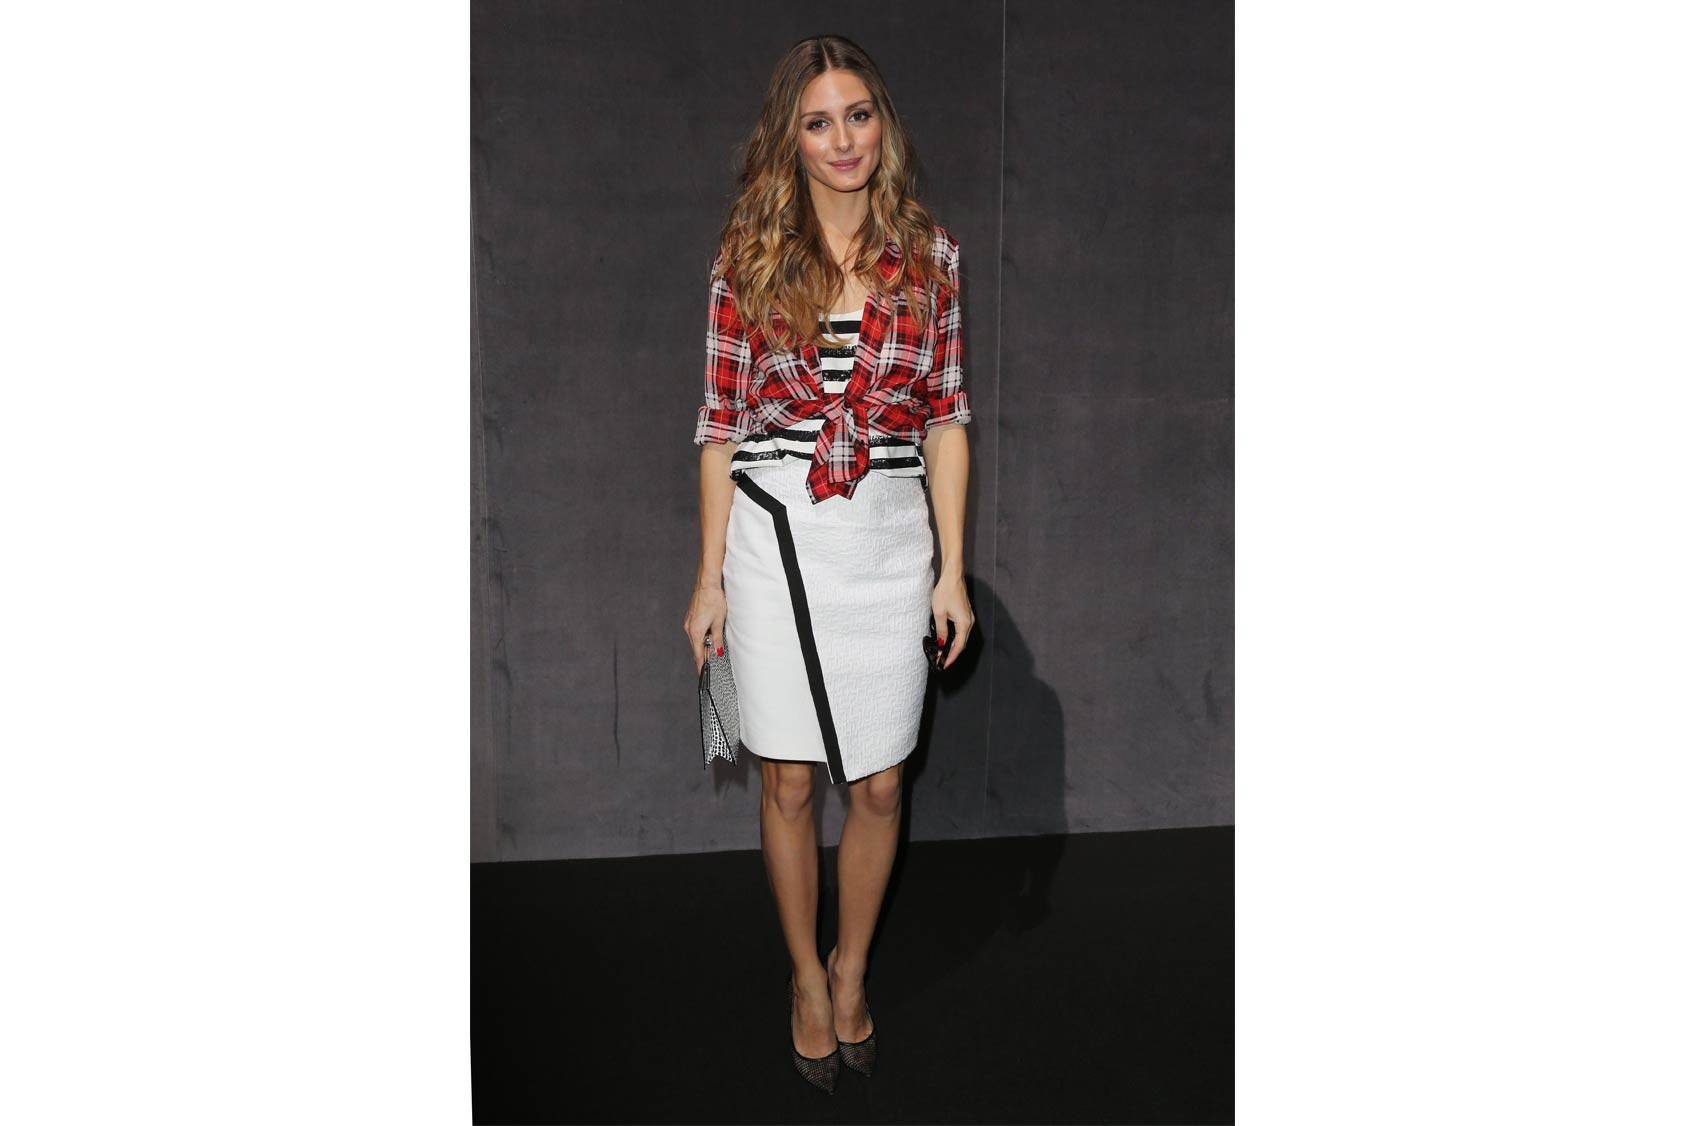 Olivia Palermo, All Over Press.